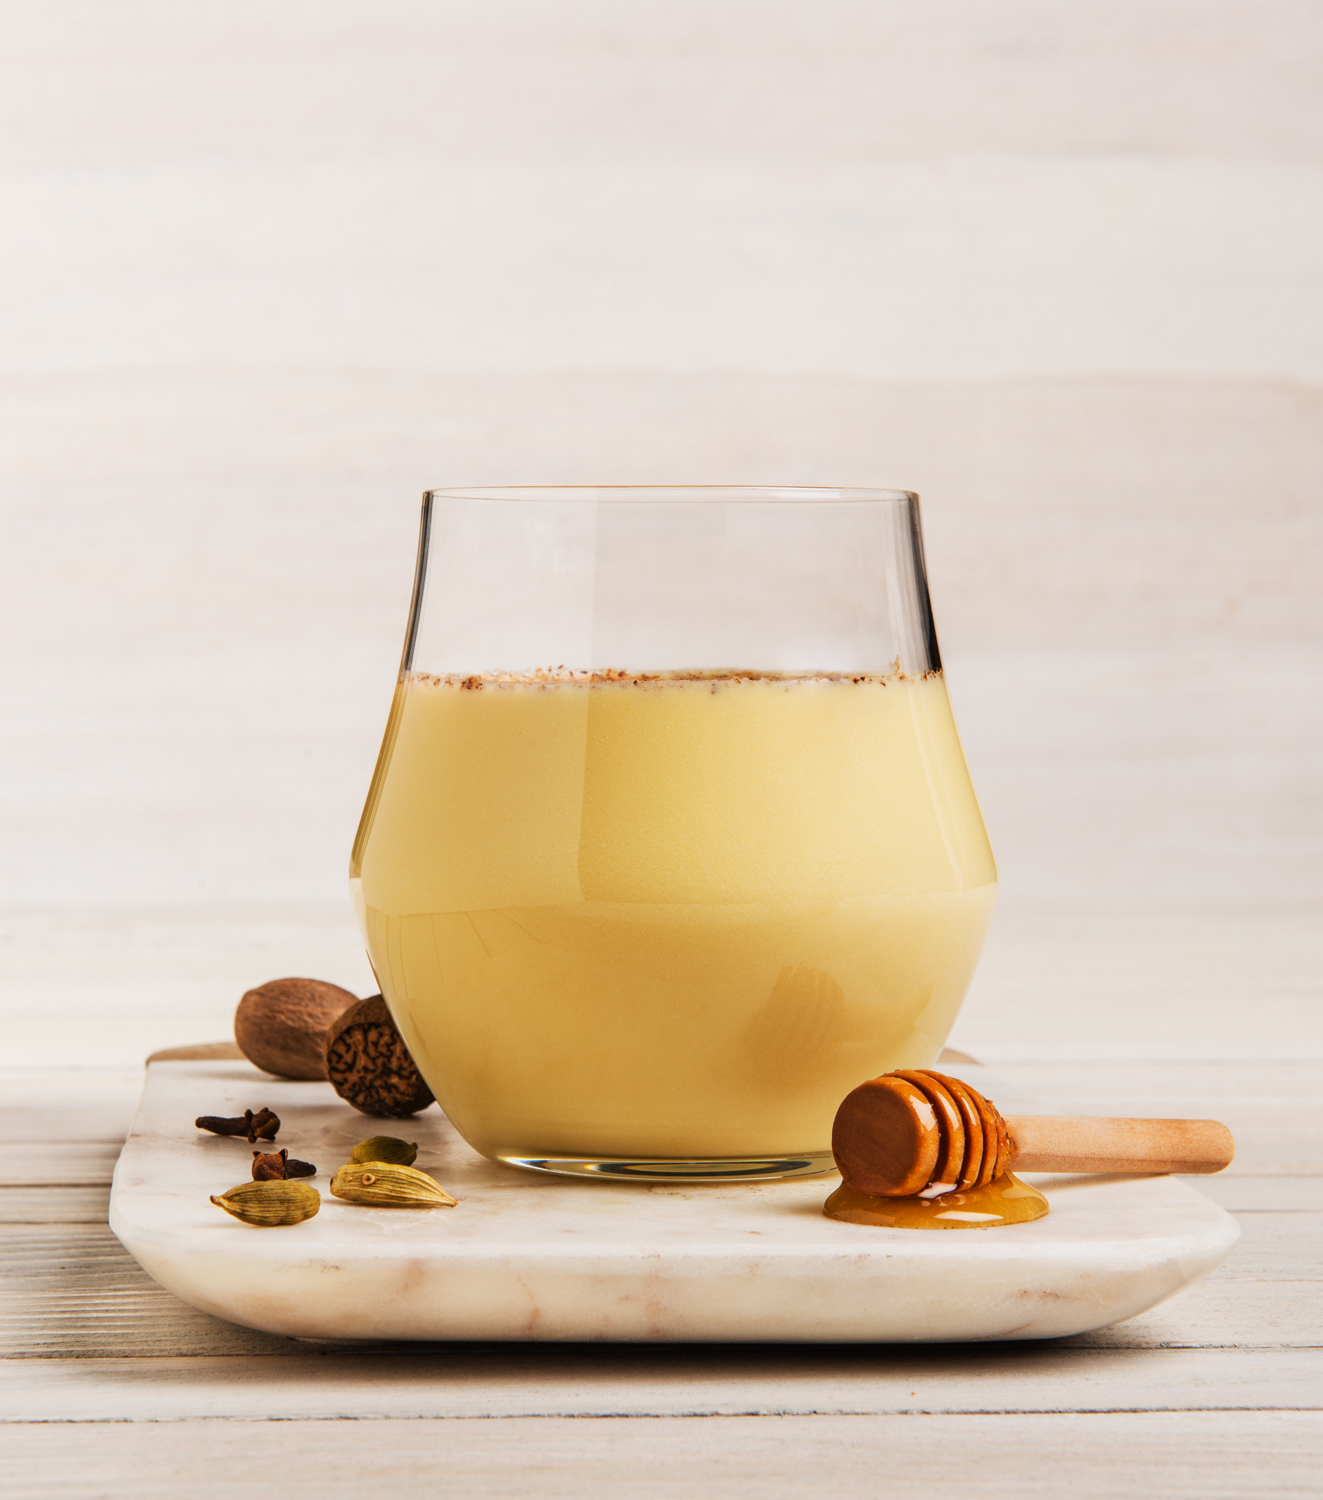 Honeyed Cardamom Clove Cognac Eggnog -  Photo by Michael Marquand